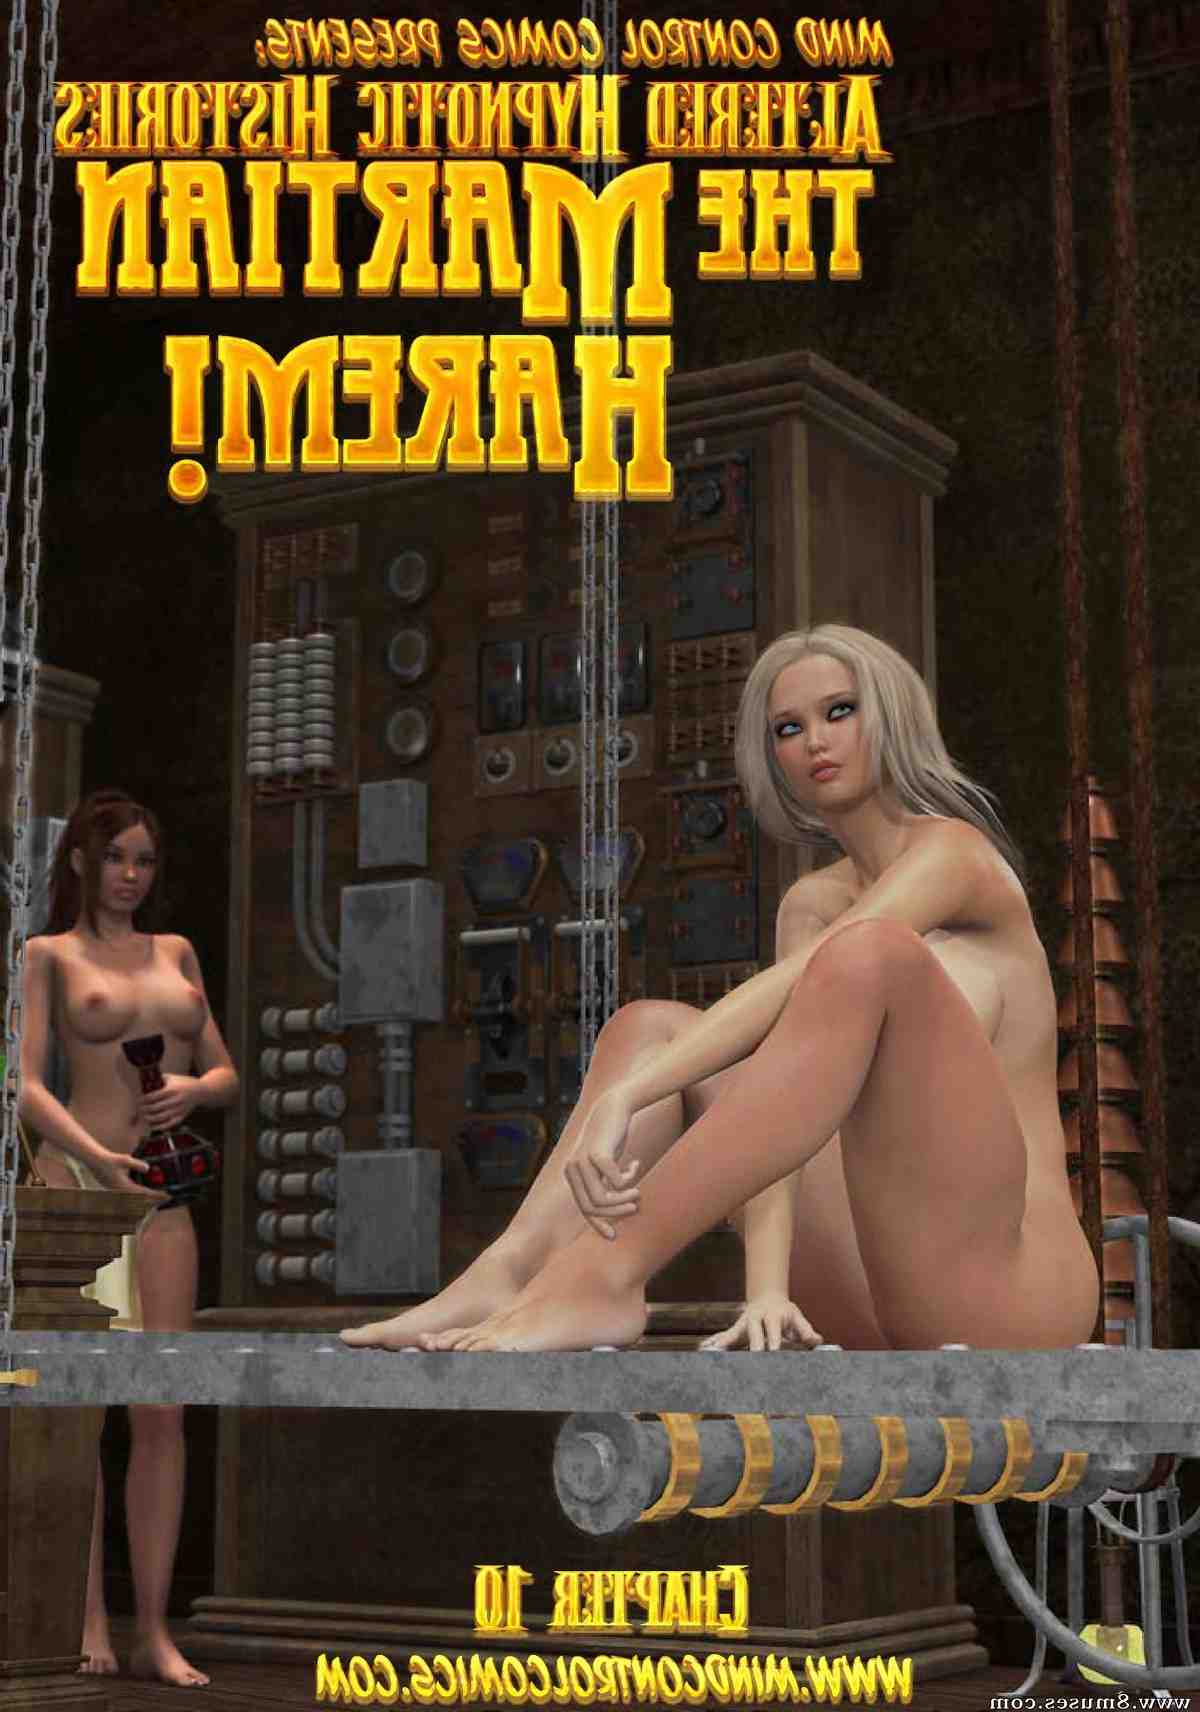 MCC-Comics/Martian-Harem Martian_Harem__8muses_-_Sex_and_Porn_Comics_10.jpg